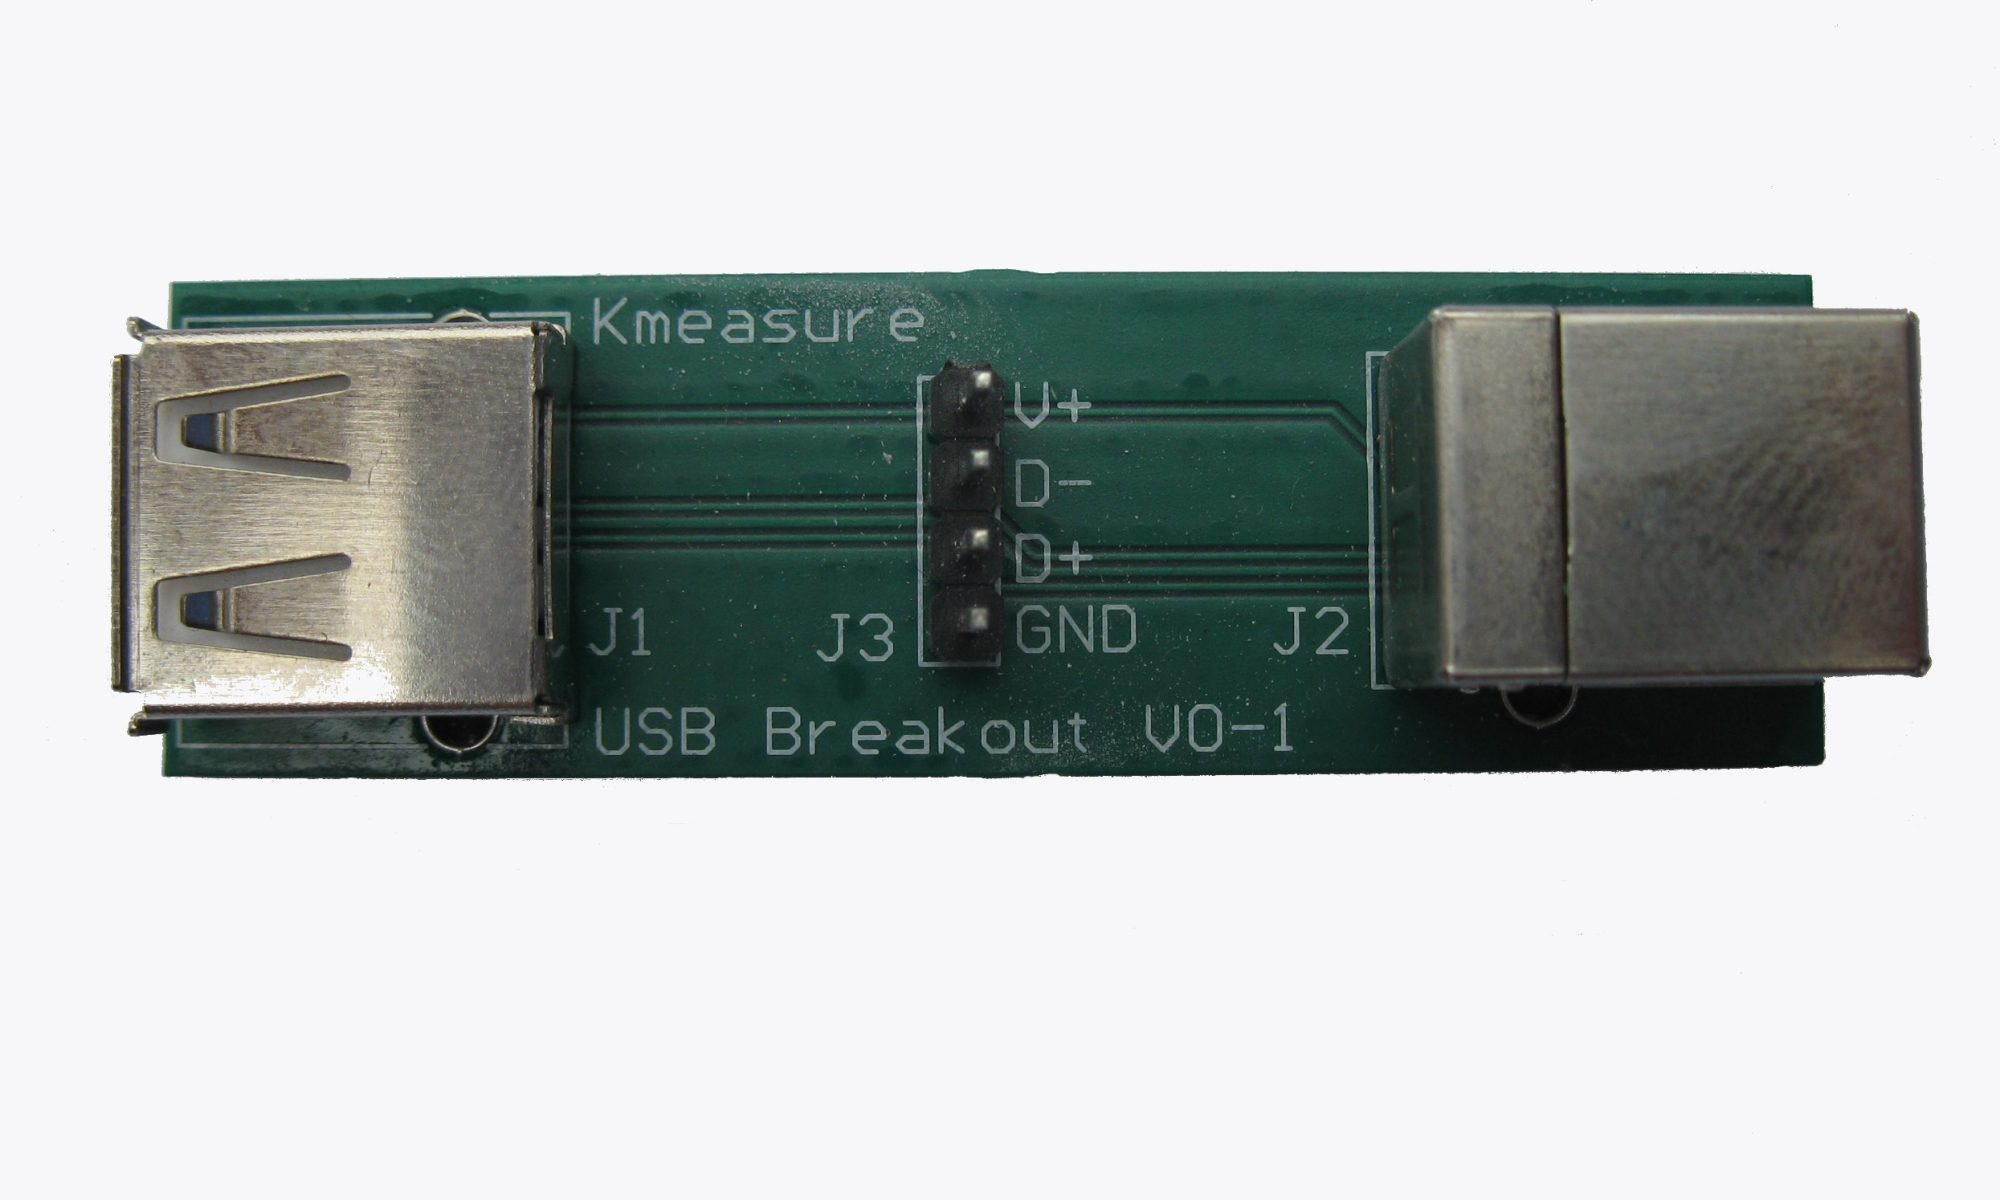 USB breakout board adapter